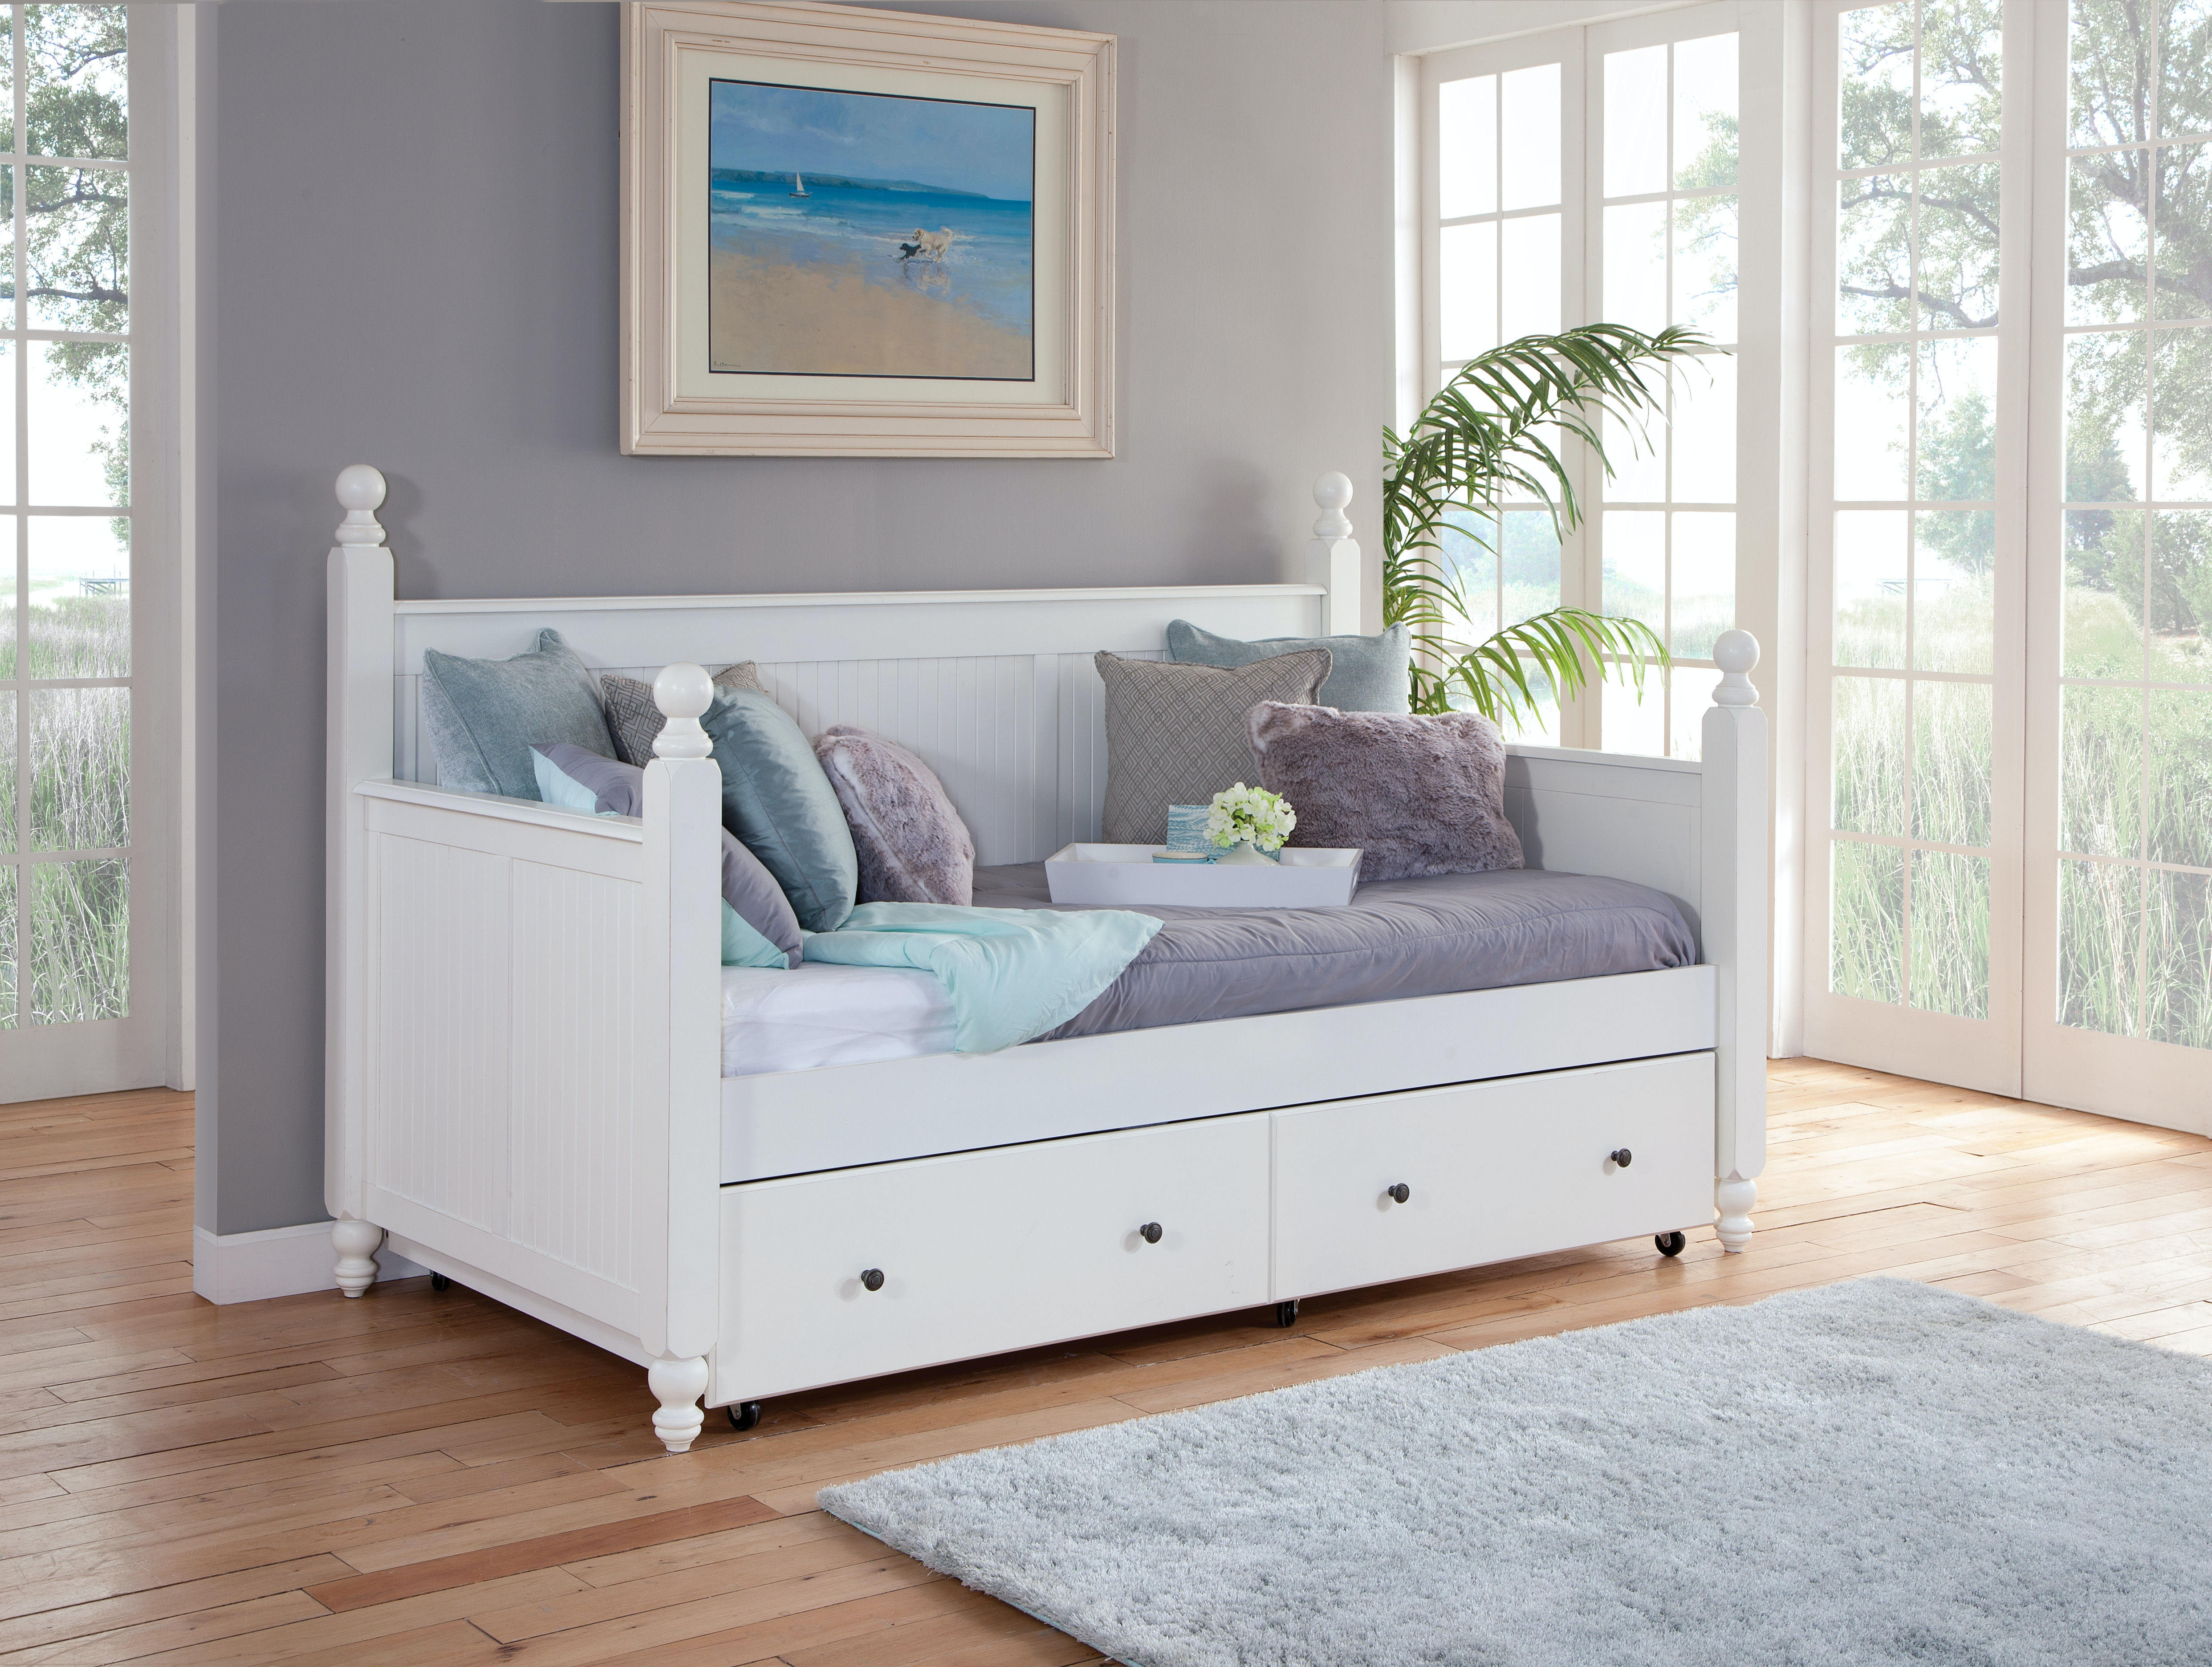 John Thomas Cottage Day Bed W/ Trundle BD07 203DH / BD07 203DE /